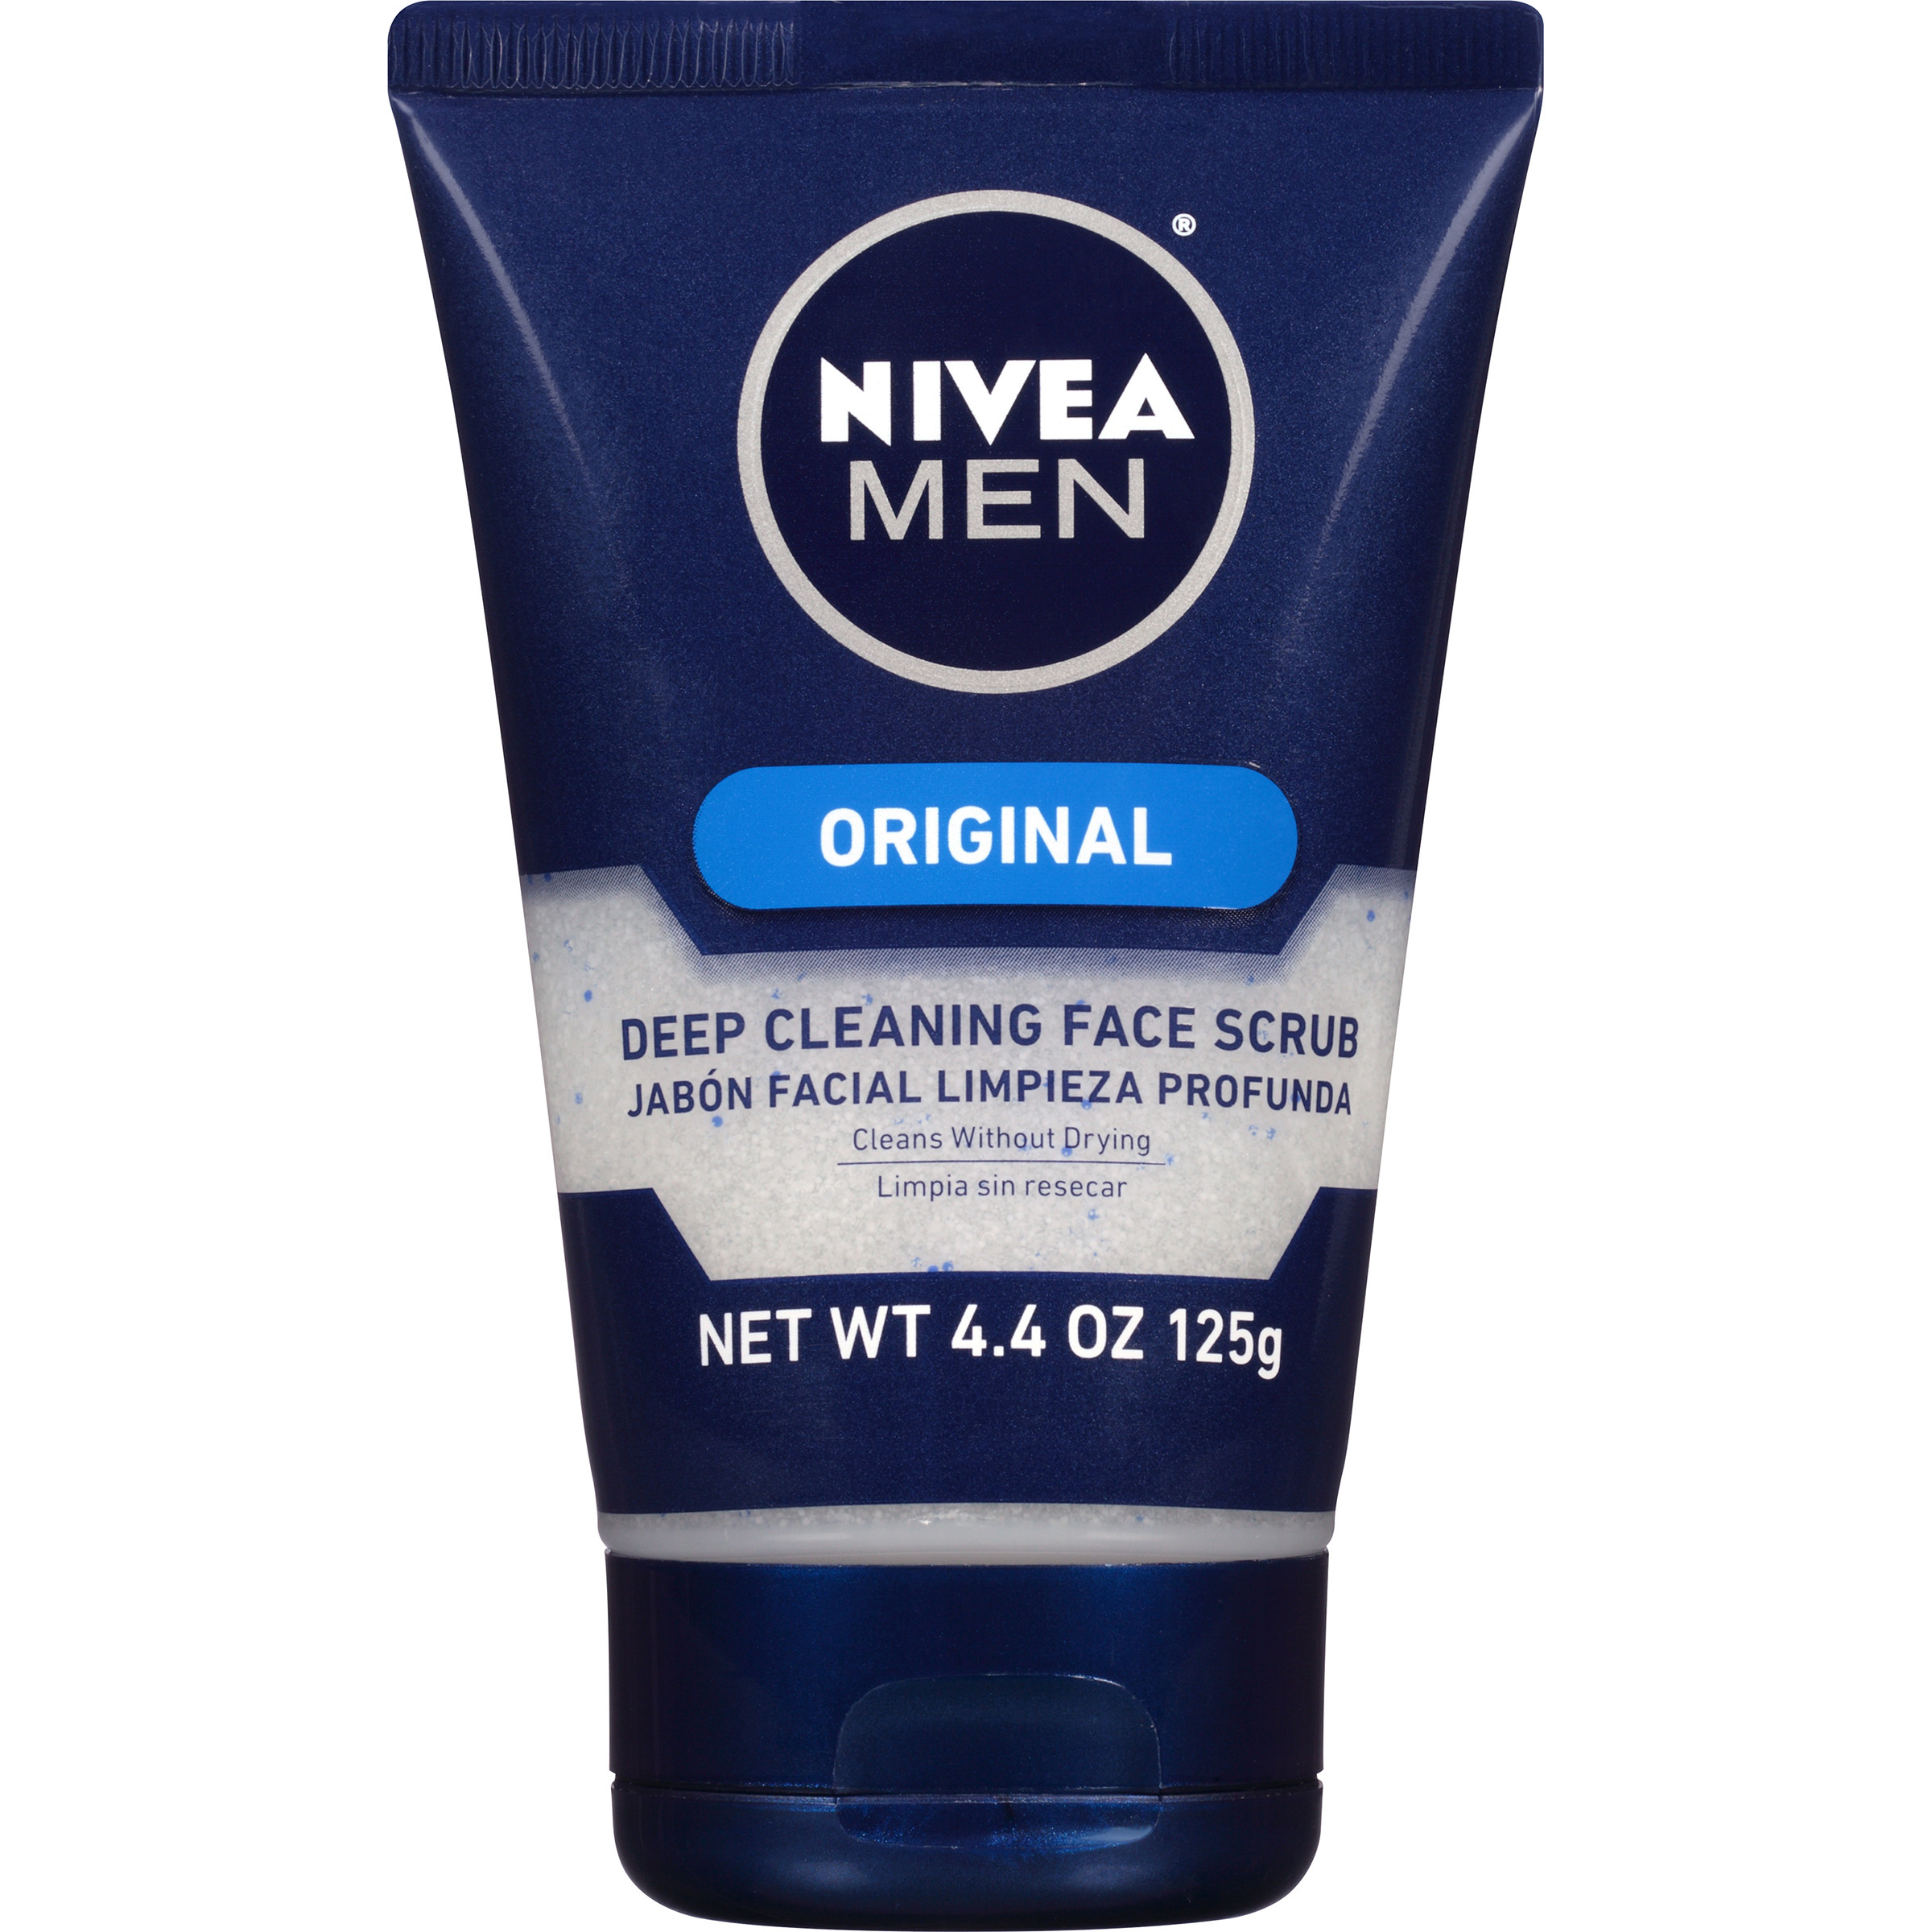 Nivea Men Original Deep Cleaning Face Scrub, 4.4 OZ